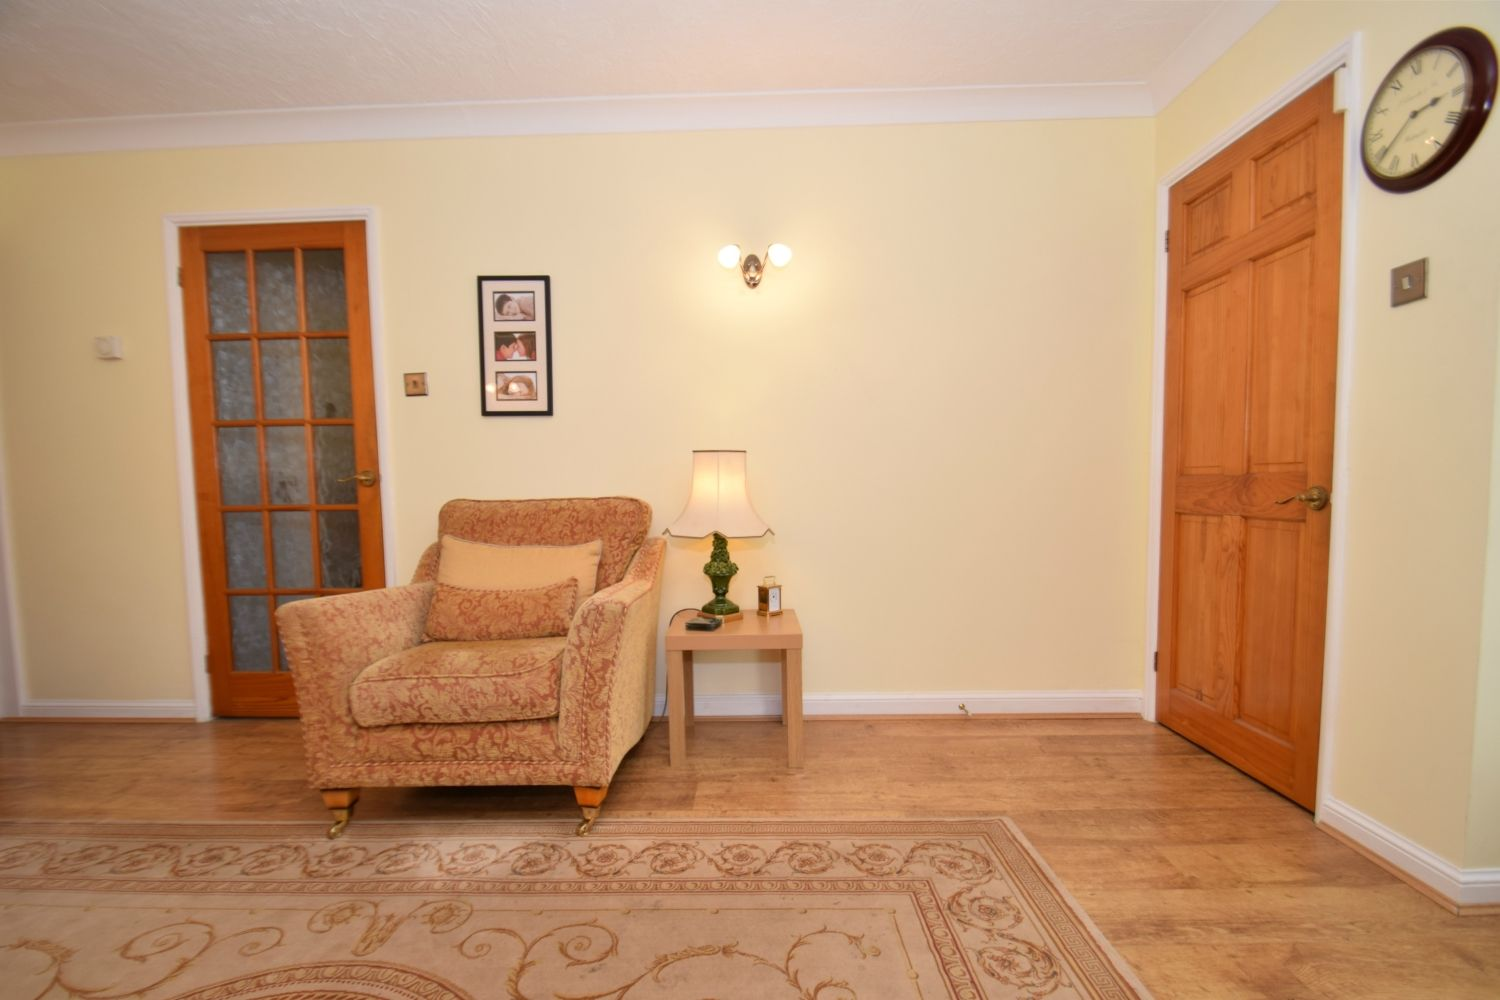 3 bed detached for sale in Foxes Close, Blackwell, B60  - Property Image 6